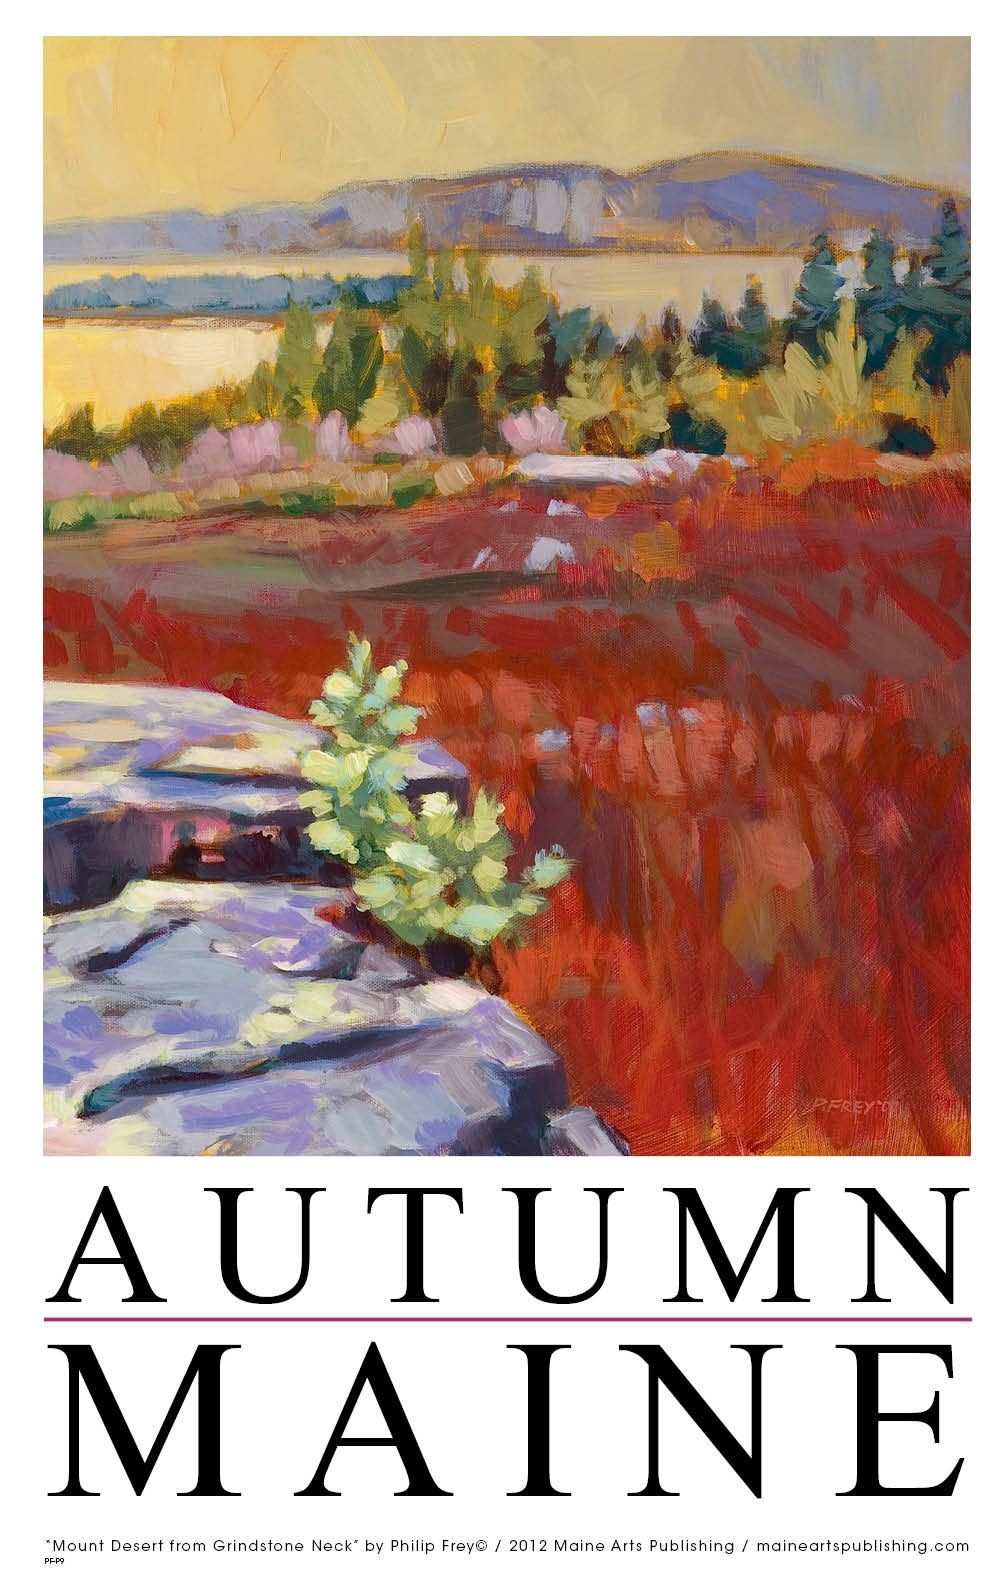 Fall has arrived in coastal Downeast Maine. The blueberry barrens have turned crimson and the afternoon light creates beautiful highlights which is captured in this poster image originally painted by Philip Frey. Order at www.maineartspublishing.com..